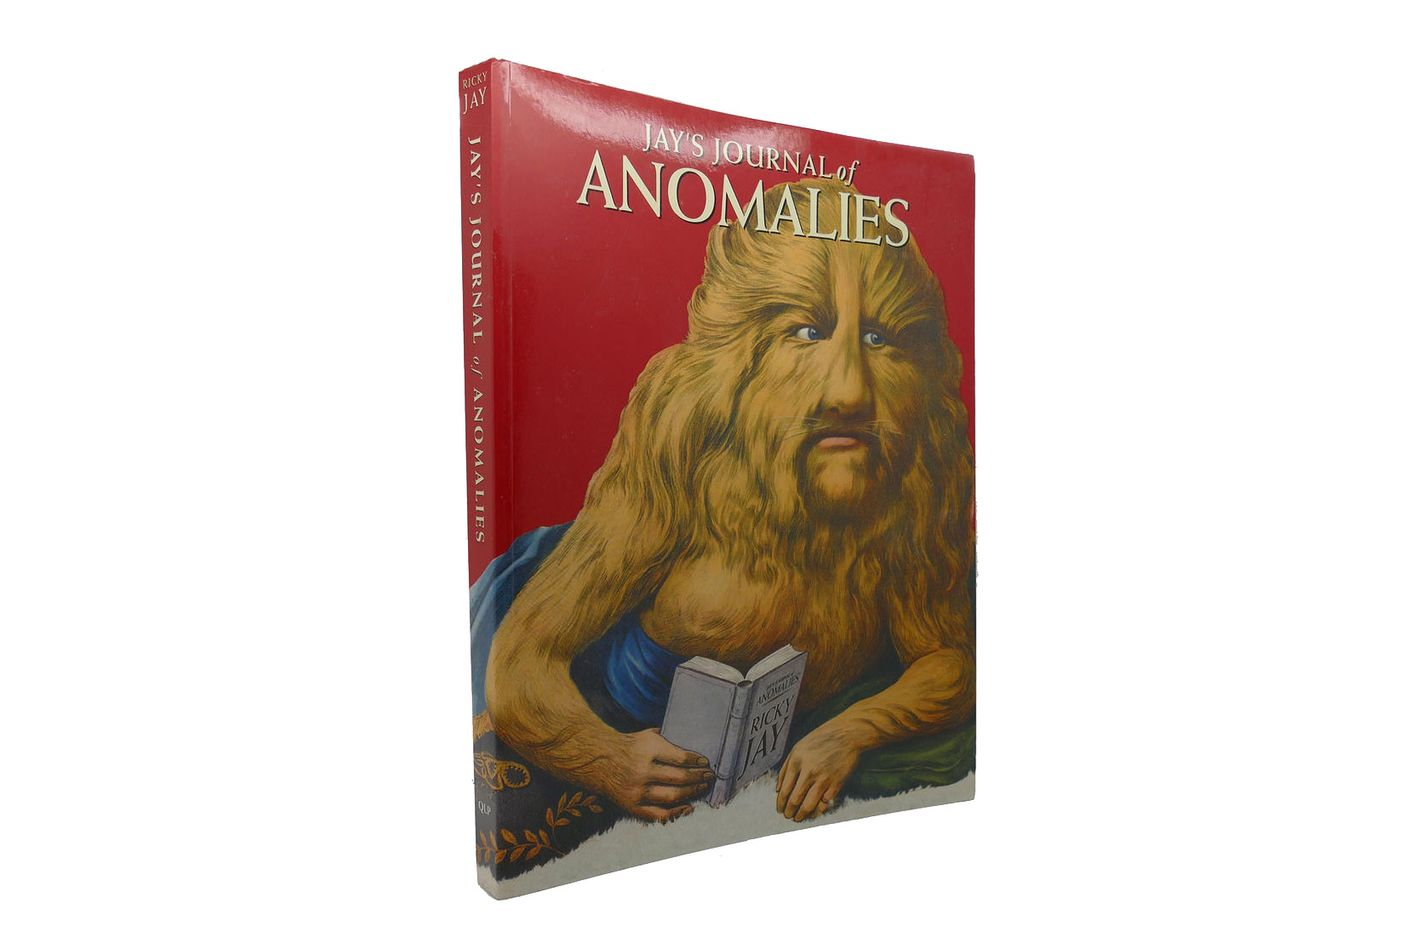 Jay's Journal of Anomalies by Ricky Jay